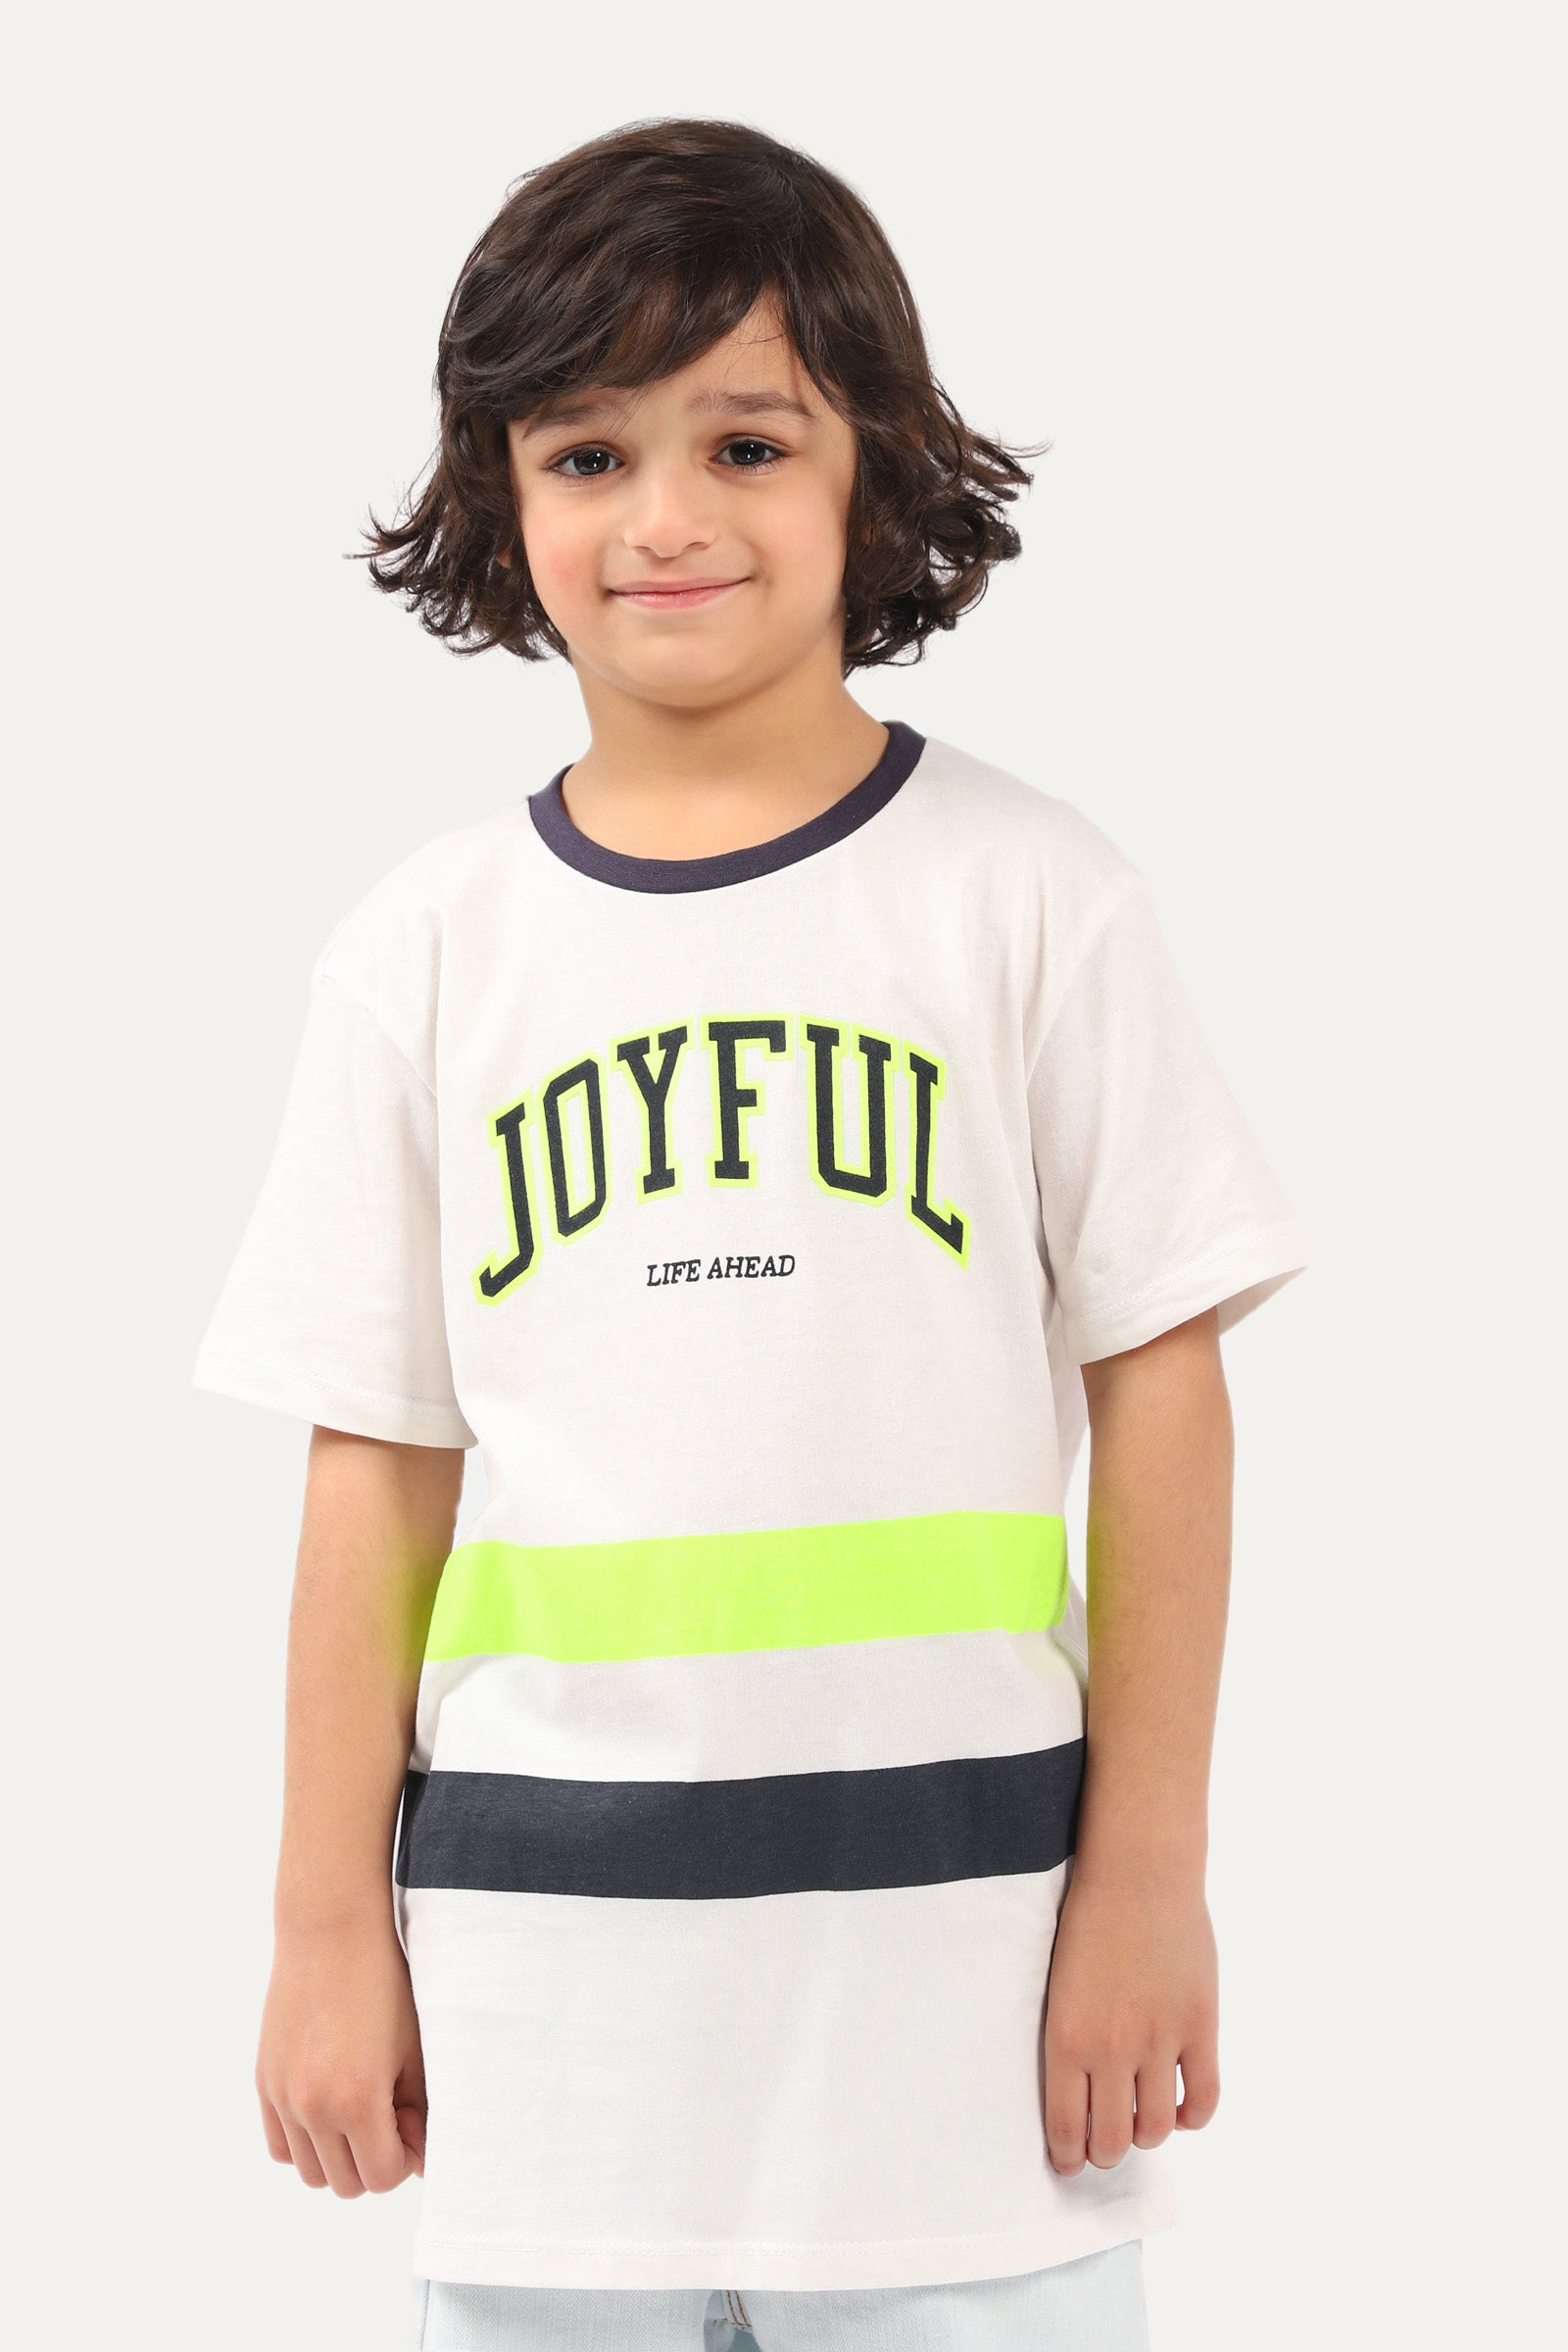 Joyful Life Ahead' T-Shirt